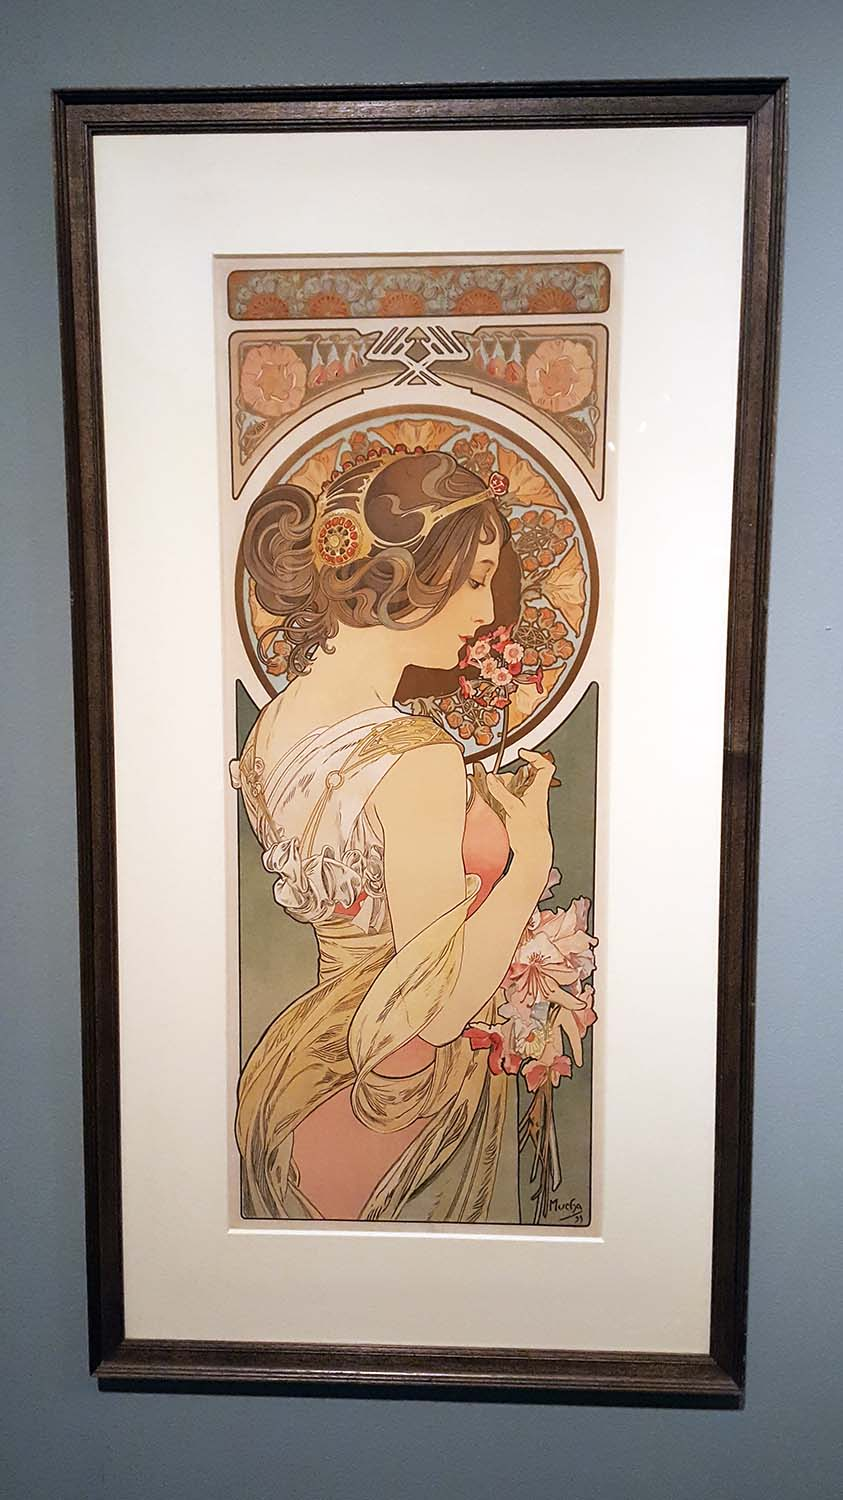 Alphonse Mucha 'In Quest of Beauty' exhibition, Autumn 2016Alphonse Mucha 'In Quest of Beauty' exhibition, Autumn 2016